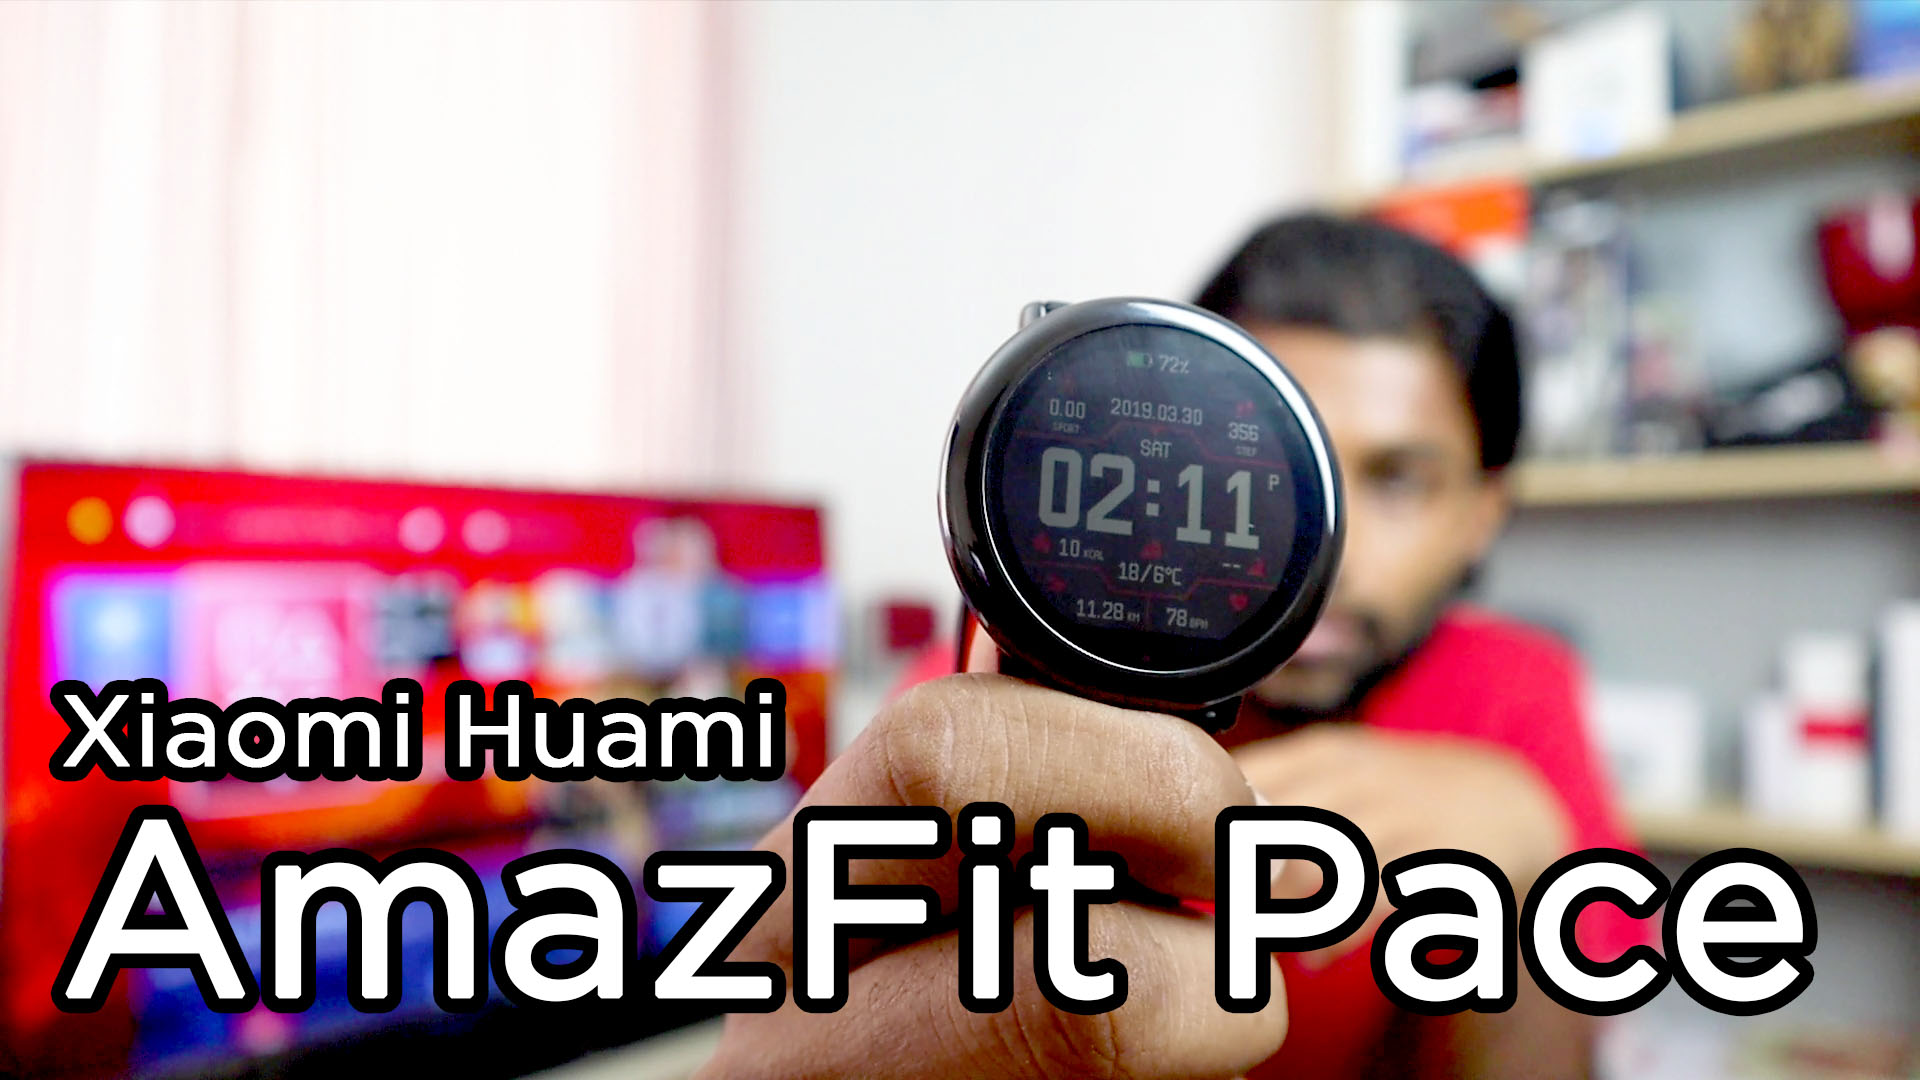 2 Years with Xiaomi Huami AmazFit Pace